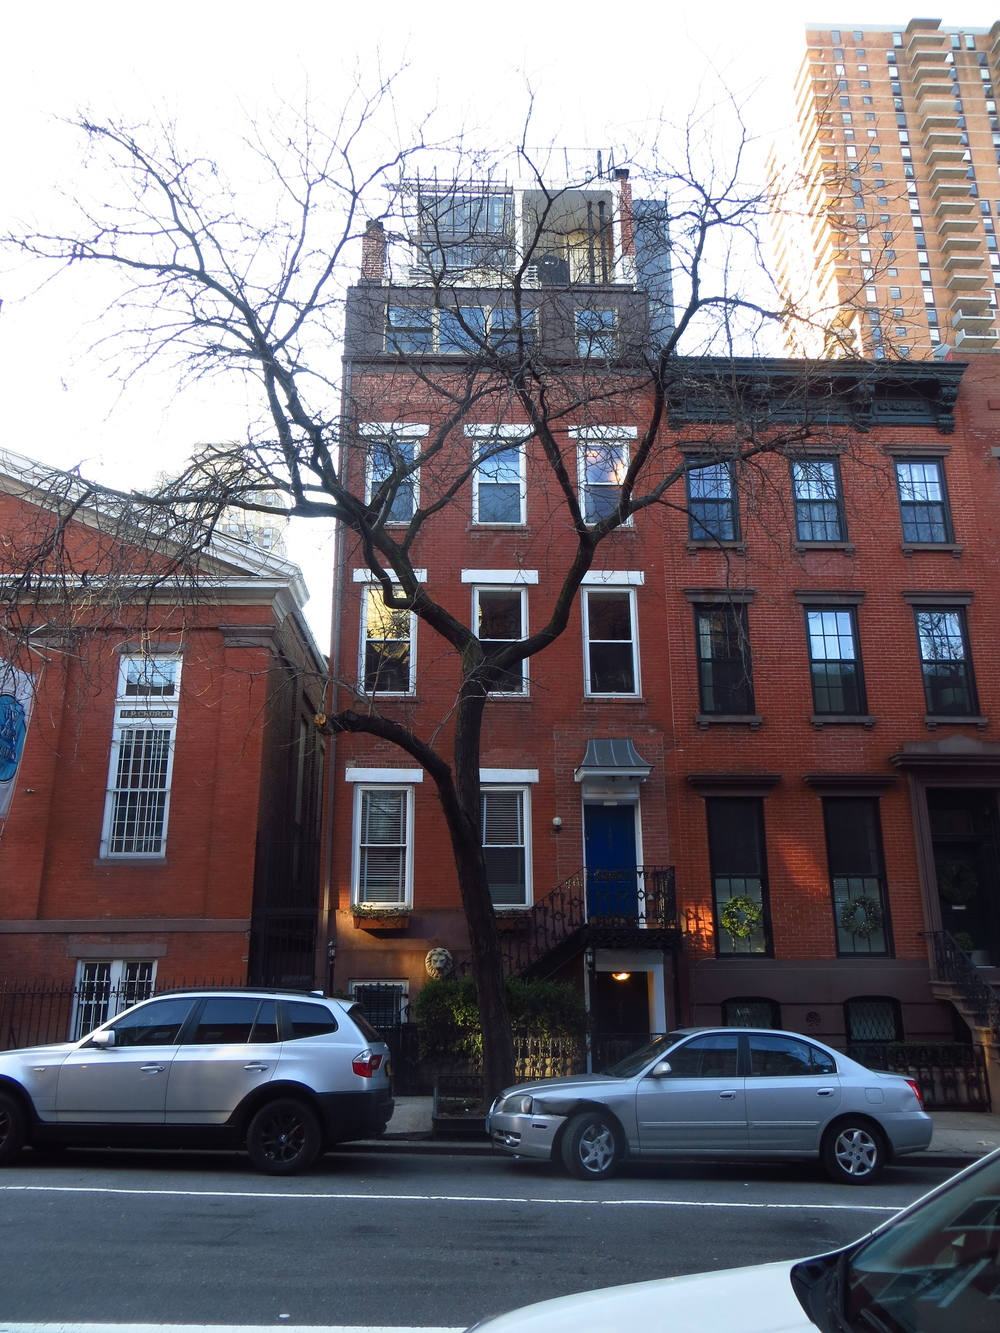 Cool row house (there's an awesome penthouse on top)